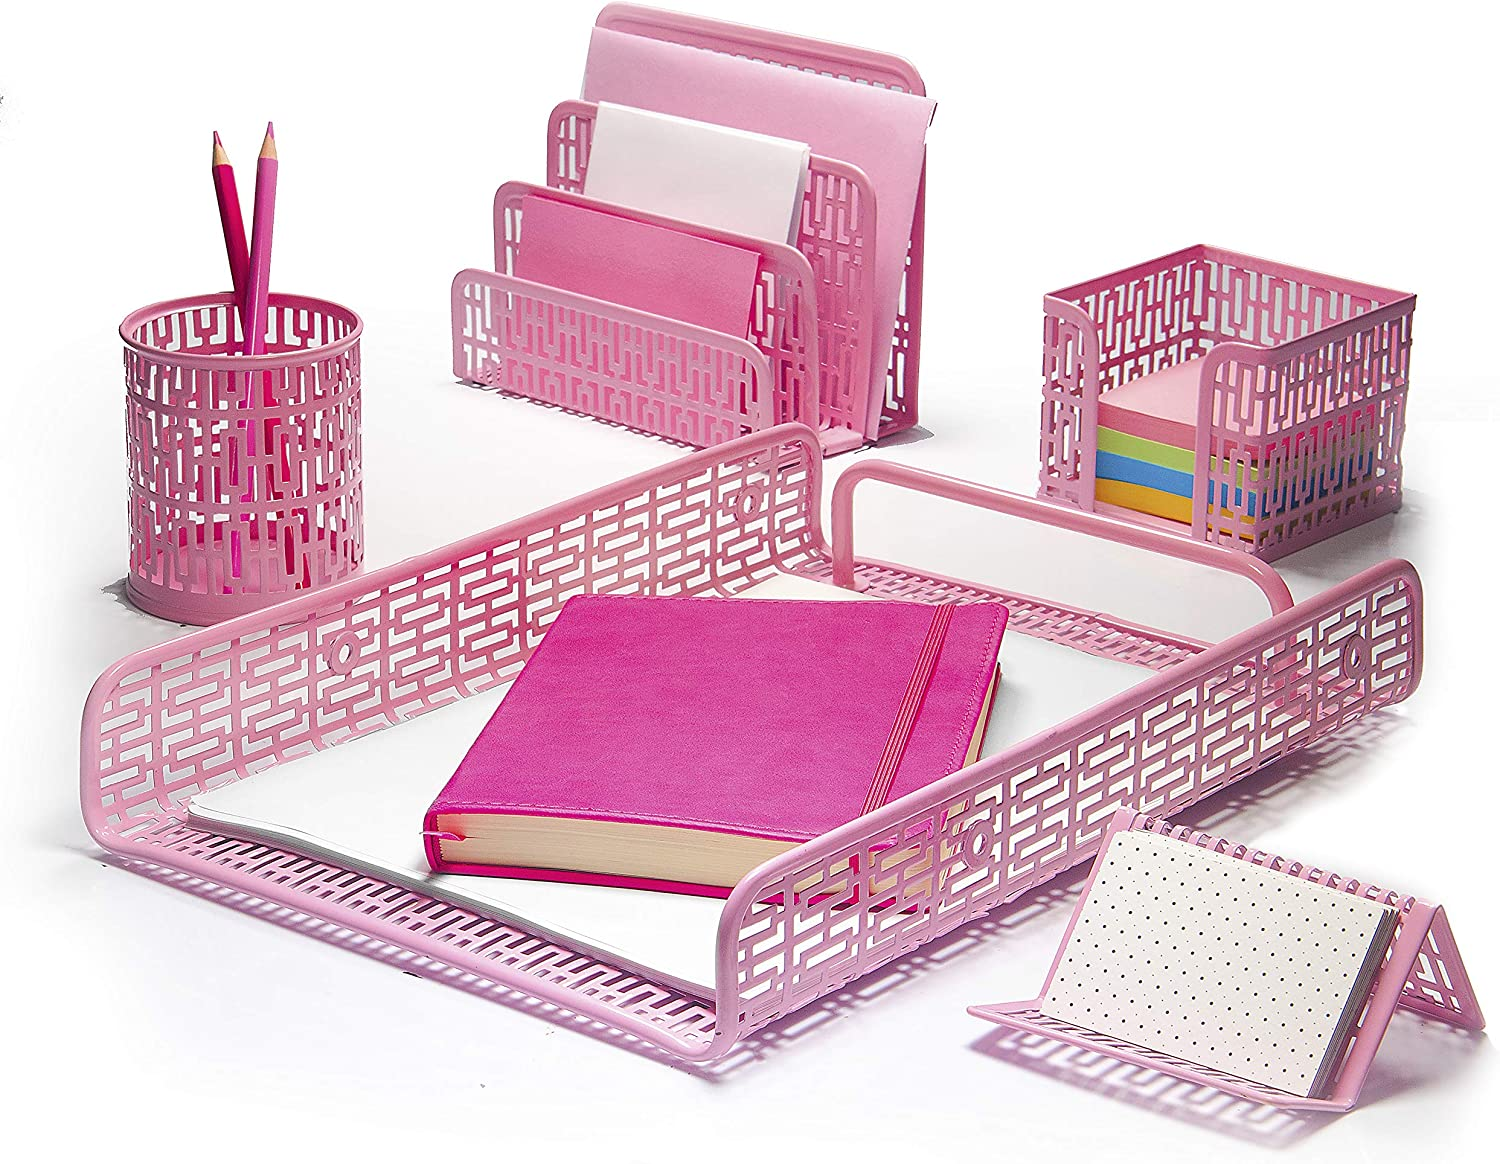 Hudstill Pink Cute Desk Organizer Set for Women and Girls in Art Deco Design with 5 Office Supplies Accessories : File Tray, Mail Sorter, Pen Cup, Holders for Sticky Notes, Business Cards or Phones